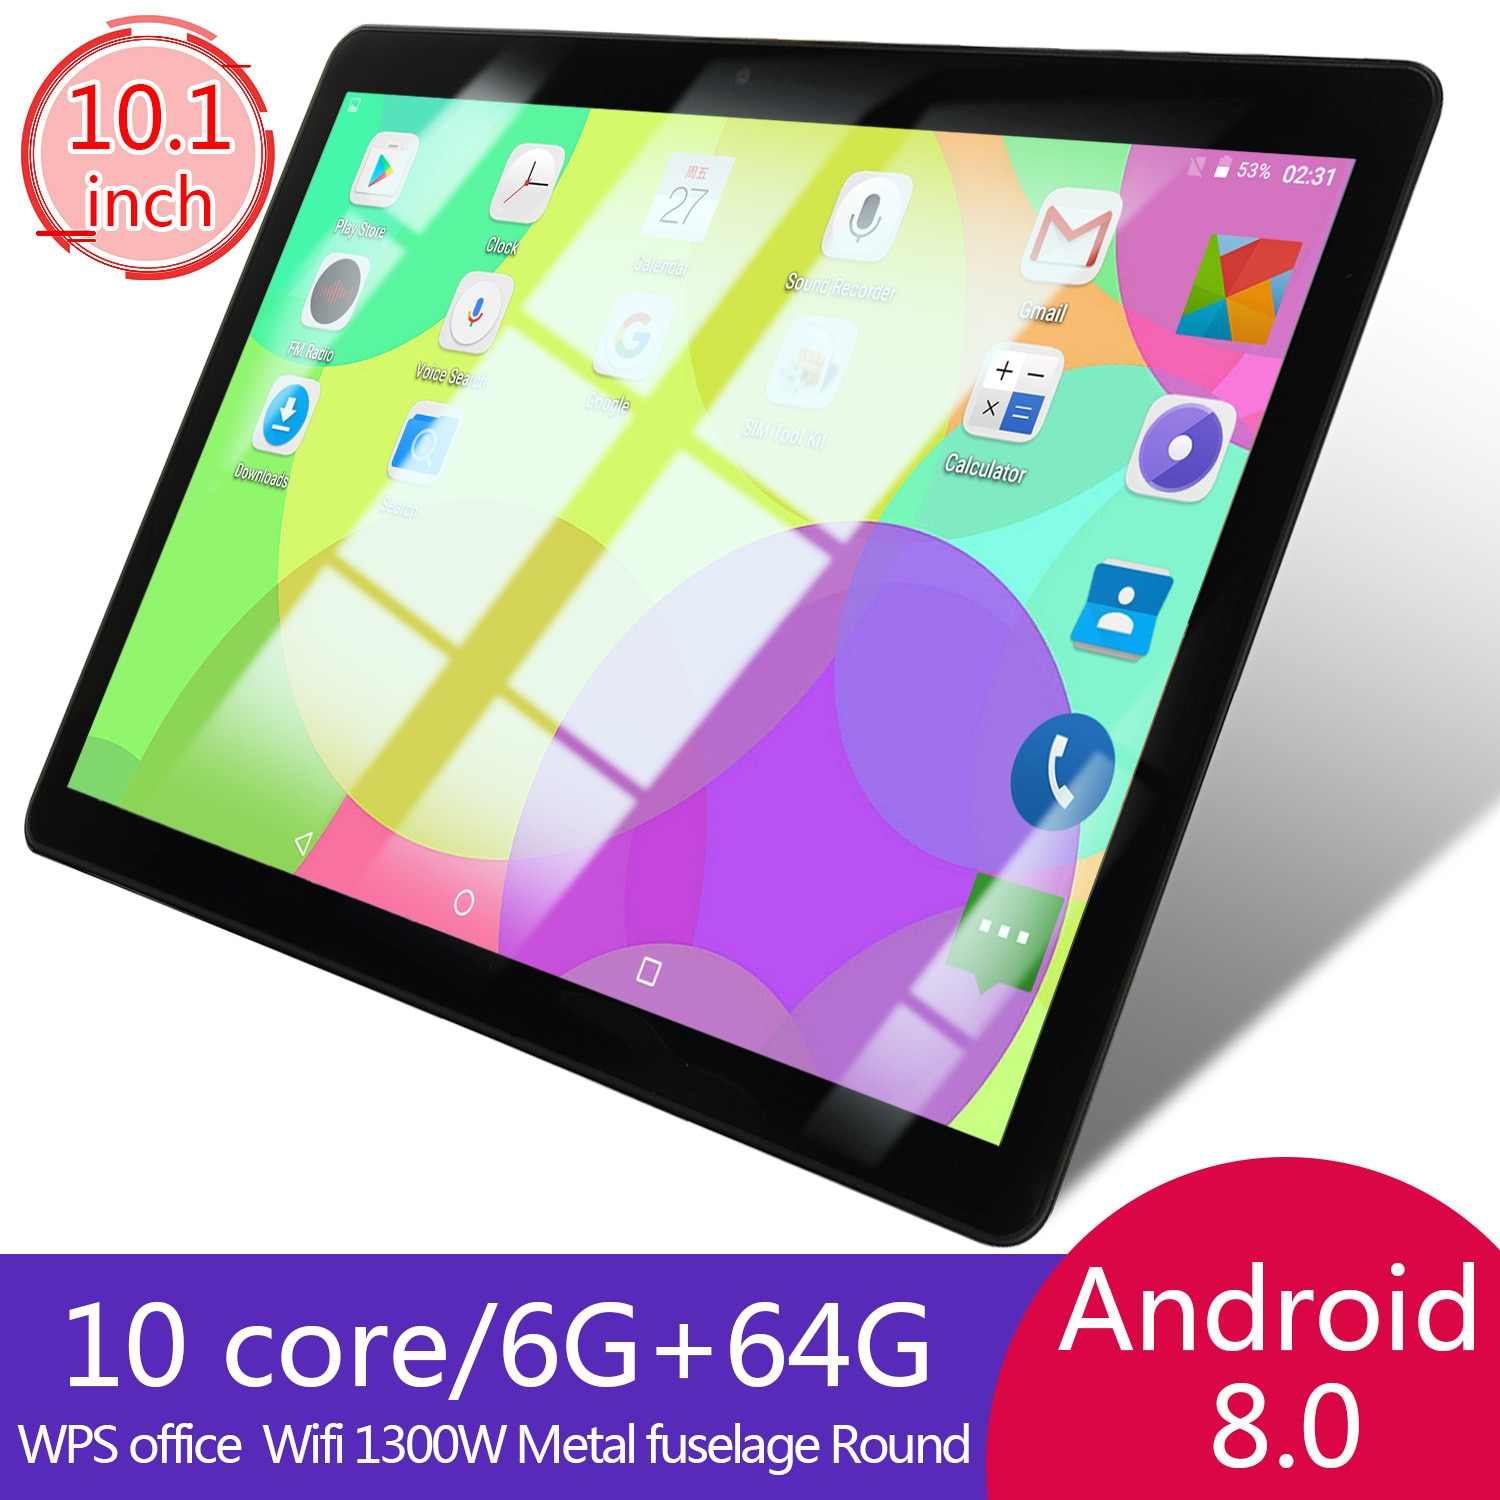 Original genuine 10 core 6+64G Android 8.0 10.1 inch tablet PC suitable for office games